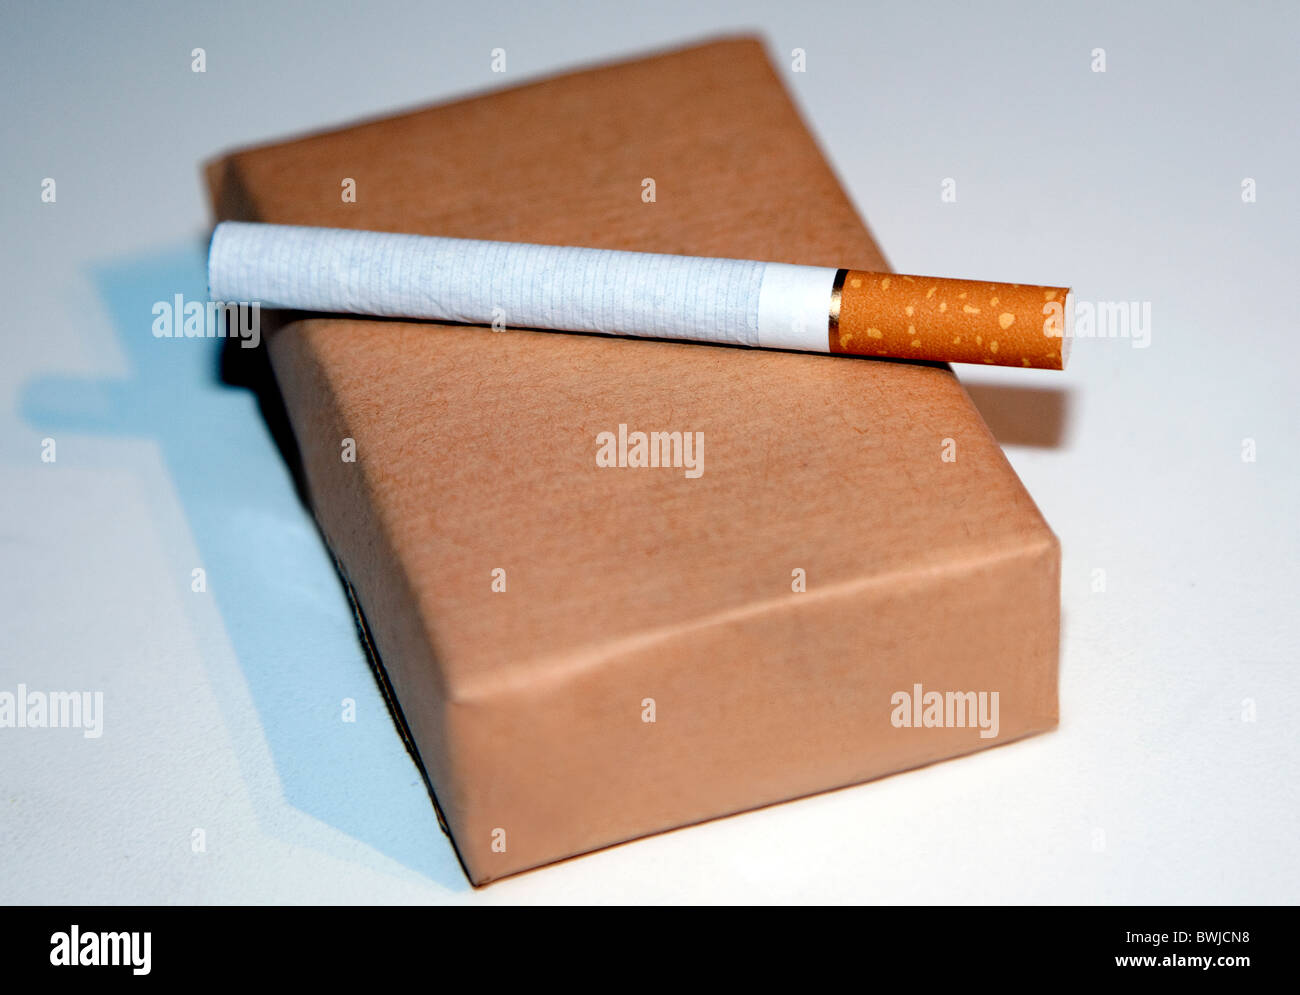 Cigarettes may be sold in the UK in plain brown or grey packets - Stock Image